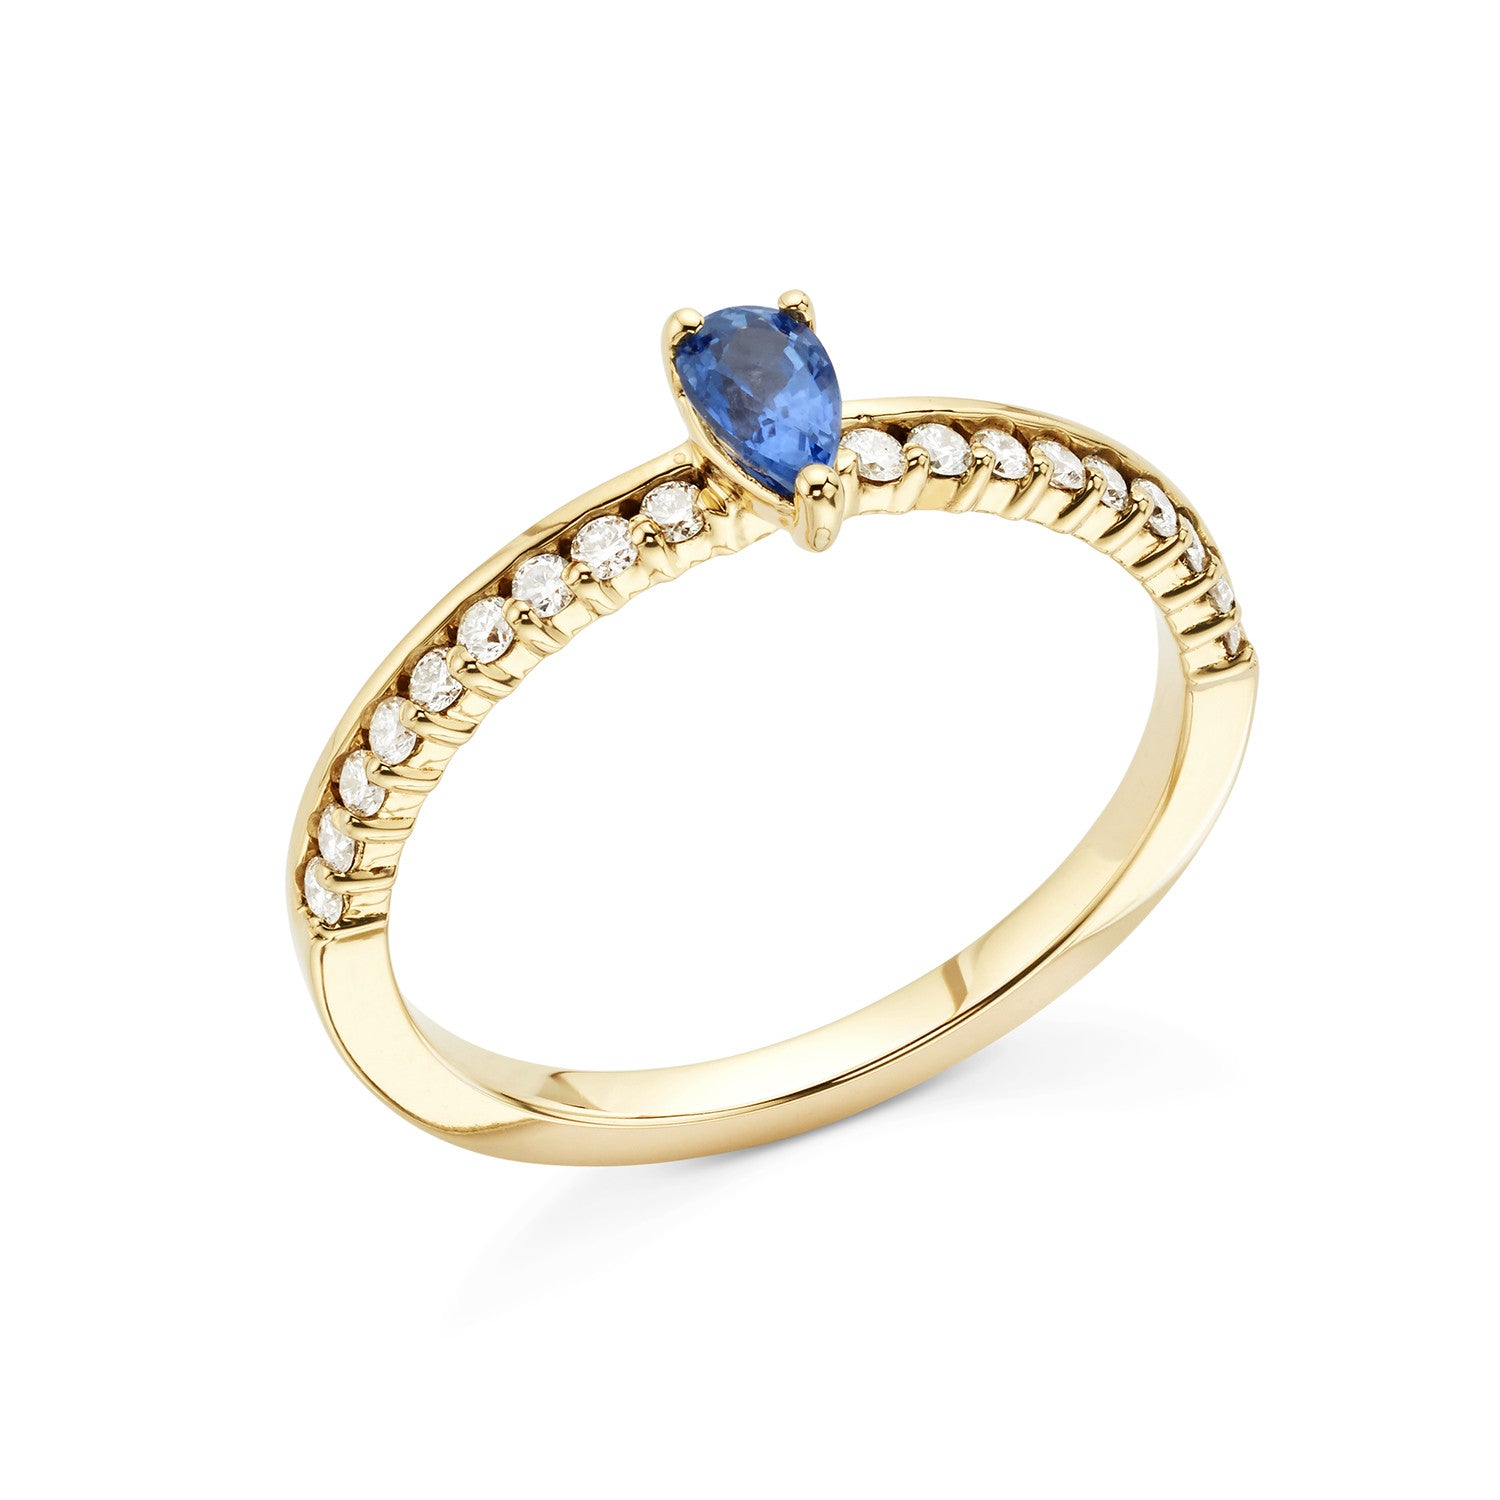 rings simon ring ladies g center and sapphire blue stone diamond white with product cz gold